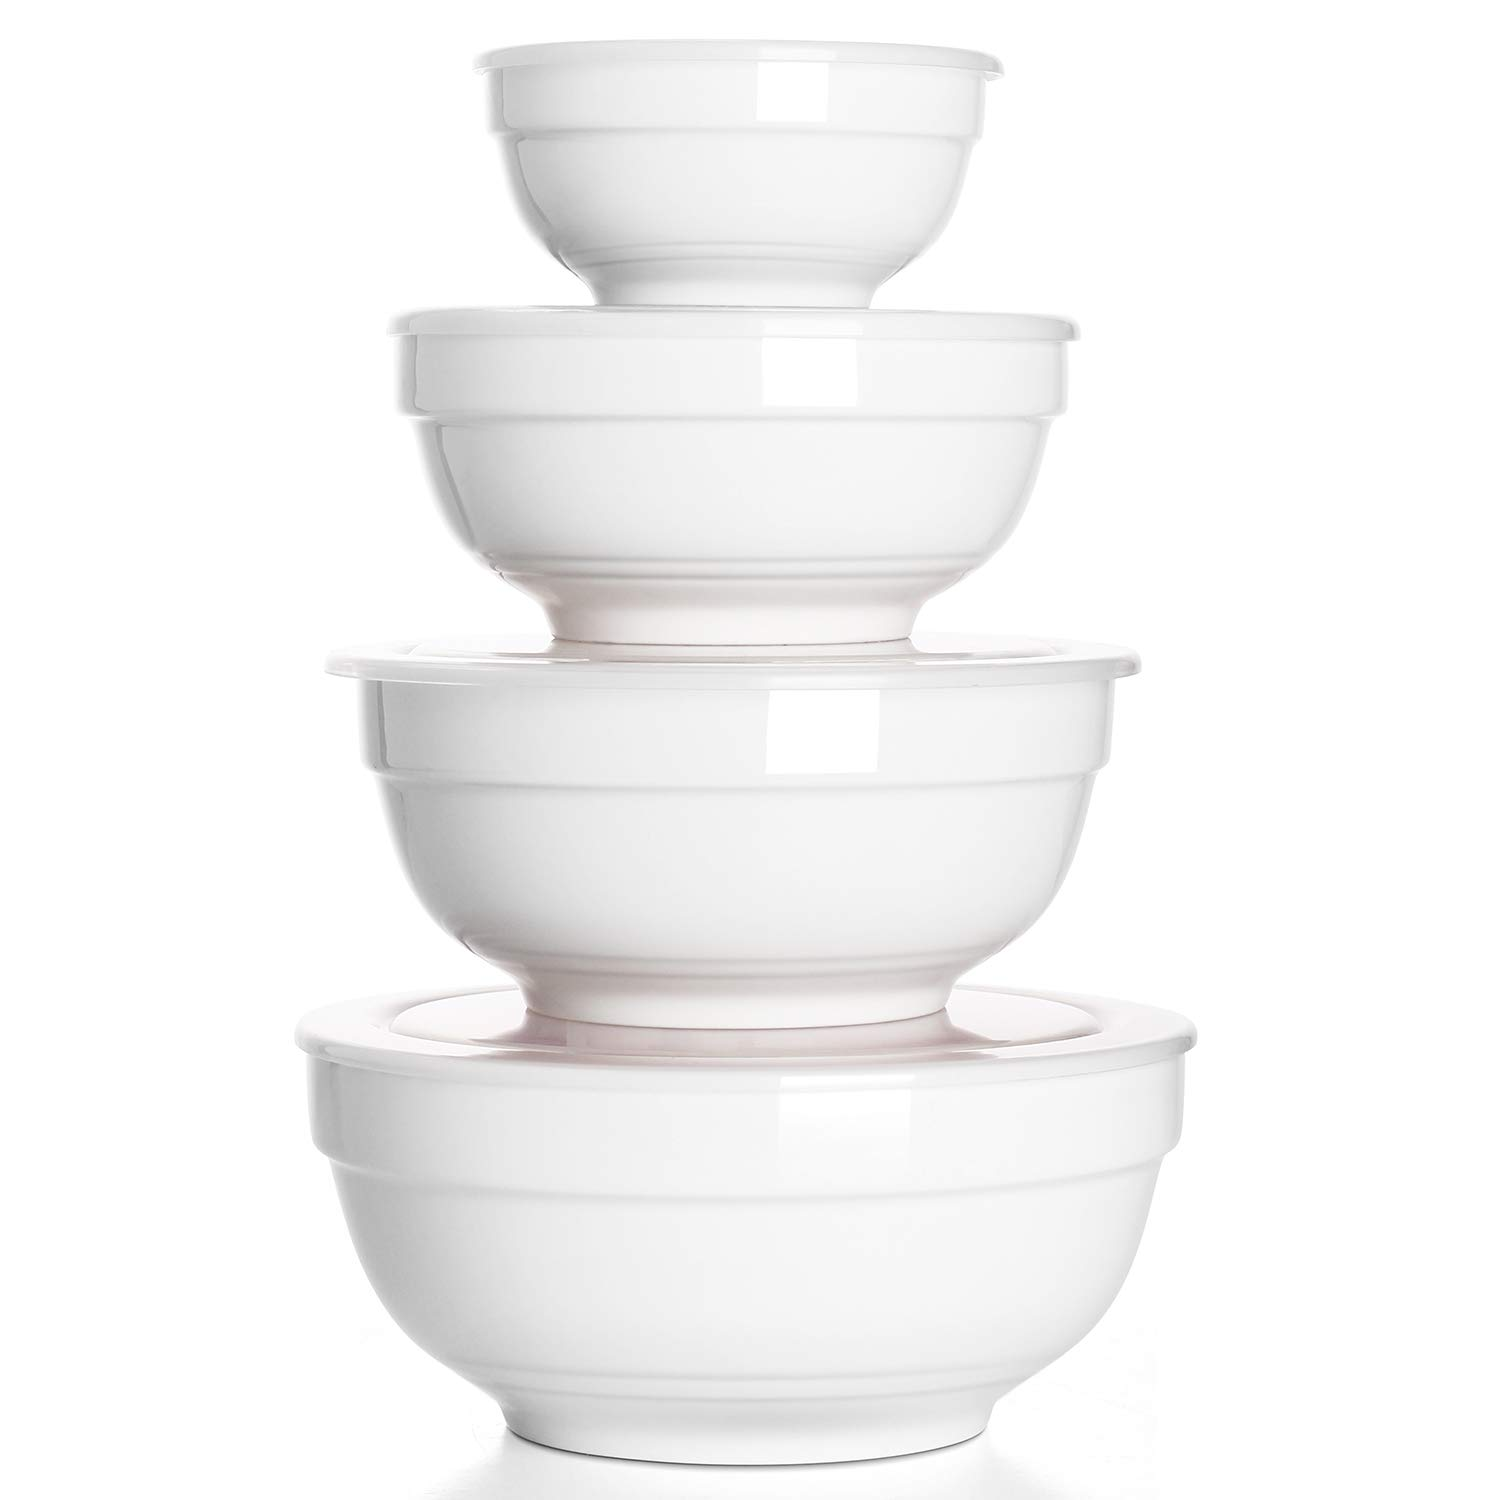 DOWAN Porcelain Serving Bowl Set with Airtight Lids for Keep Fresh, Small Mixing Bowls, Non Slip, Set of 4